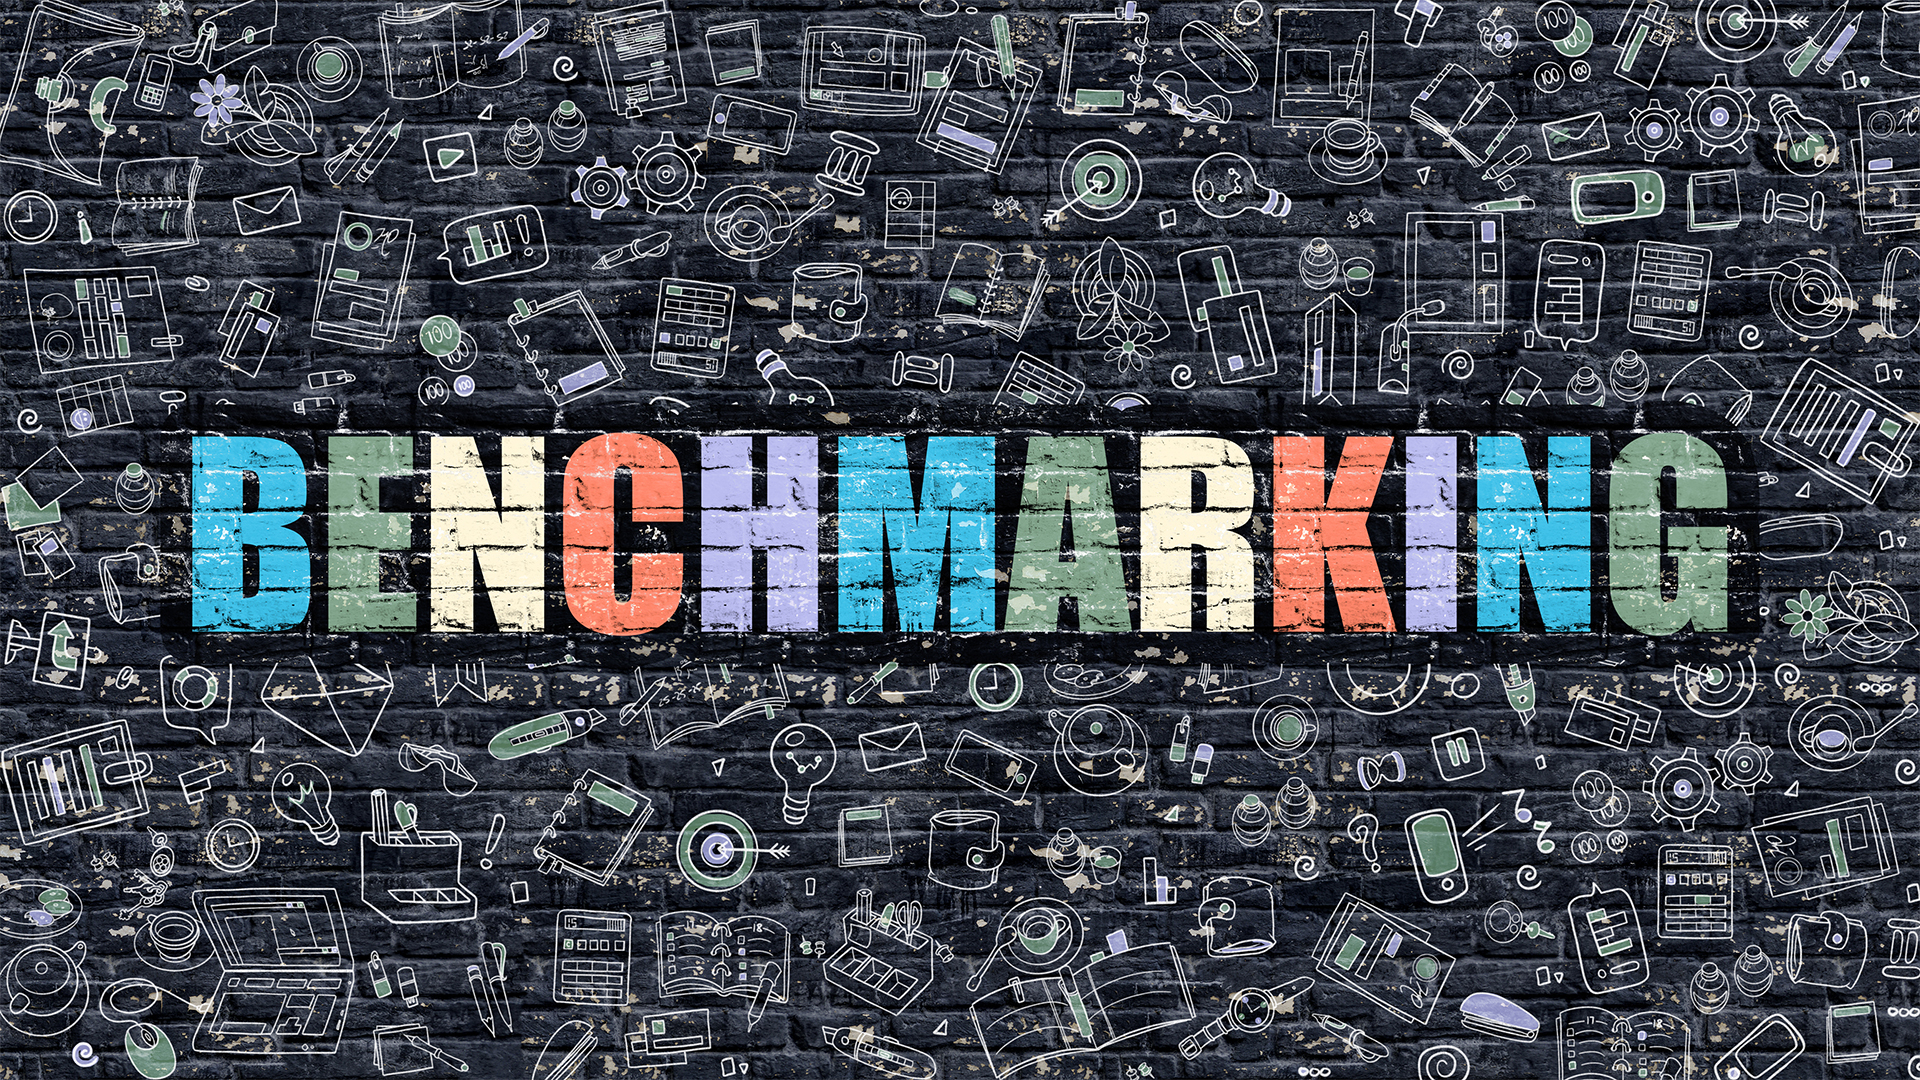 Benchmarking marketing - why, how